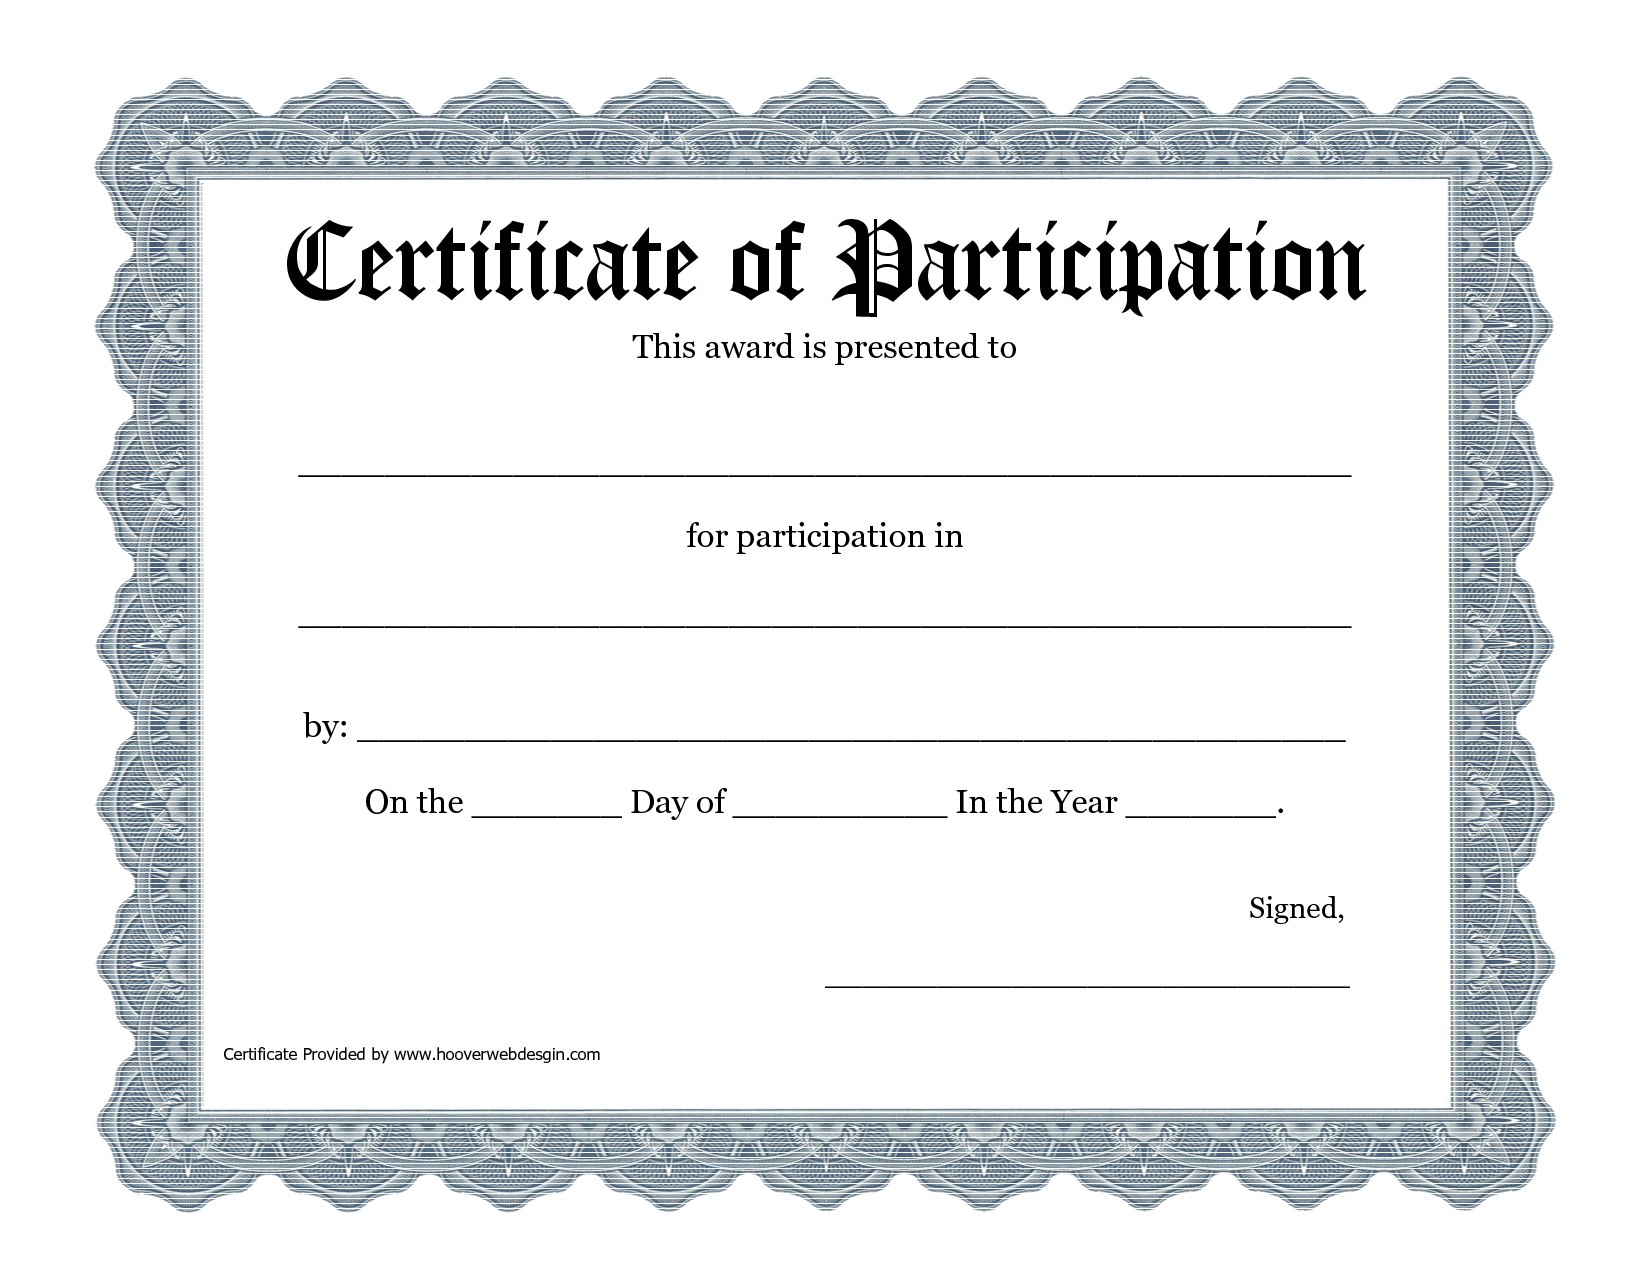 Free Printable Award Certificate Template - Bing Images | 2016 Art - Free Soccer Award Certificates Printable